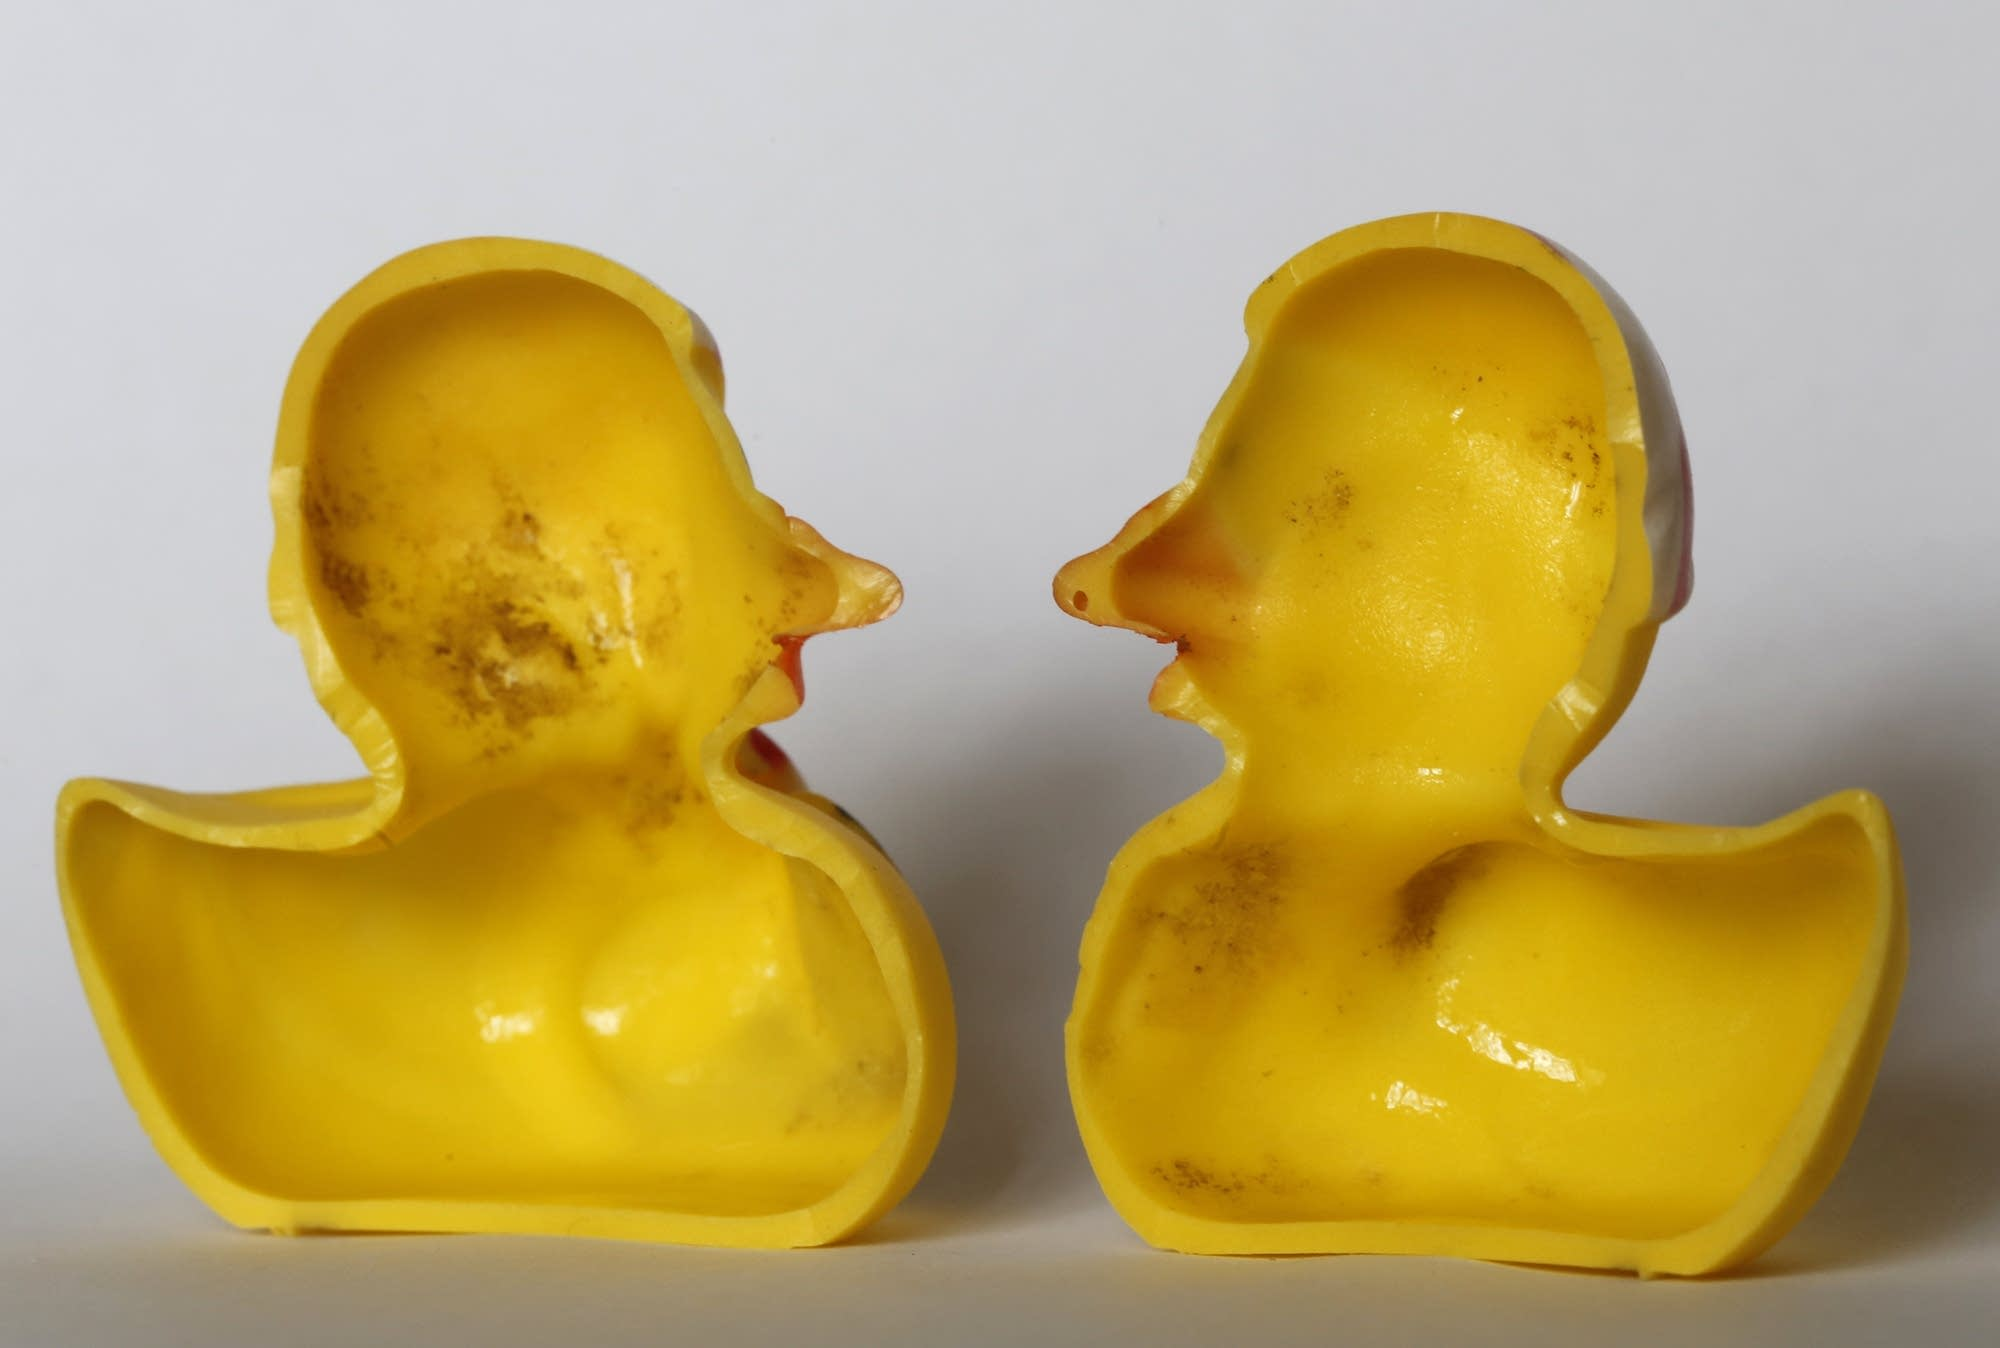 Ugly ducklings: should rubber ducks be banned from the bath?